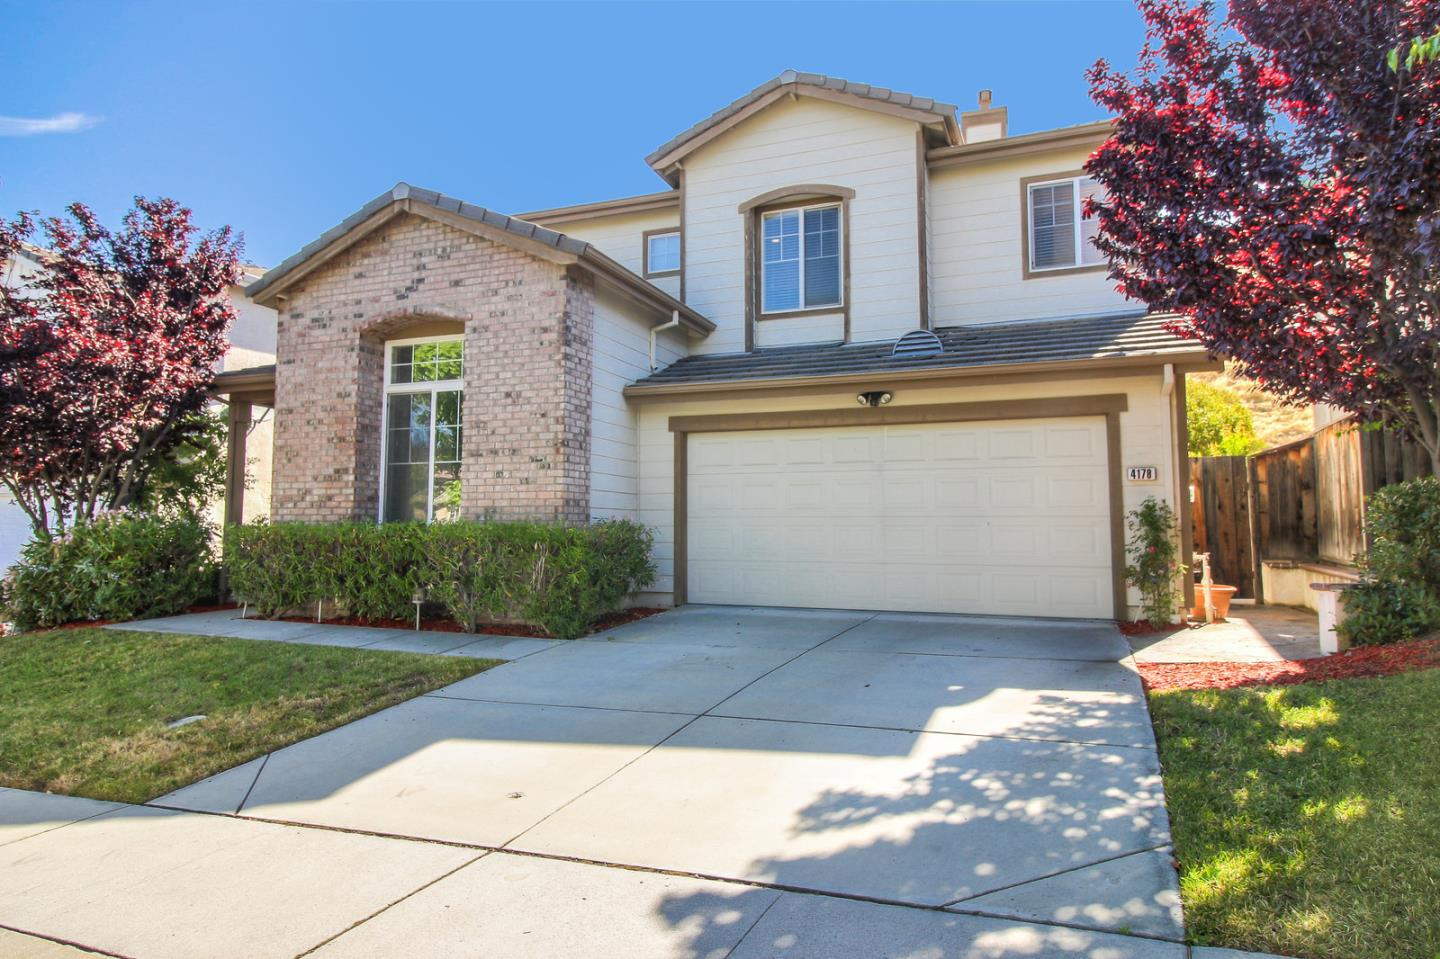 4178 Astin Canyon CT, Evergreen, California